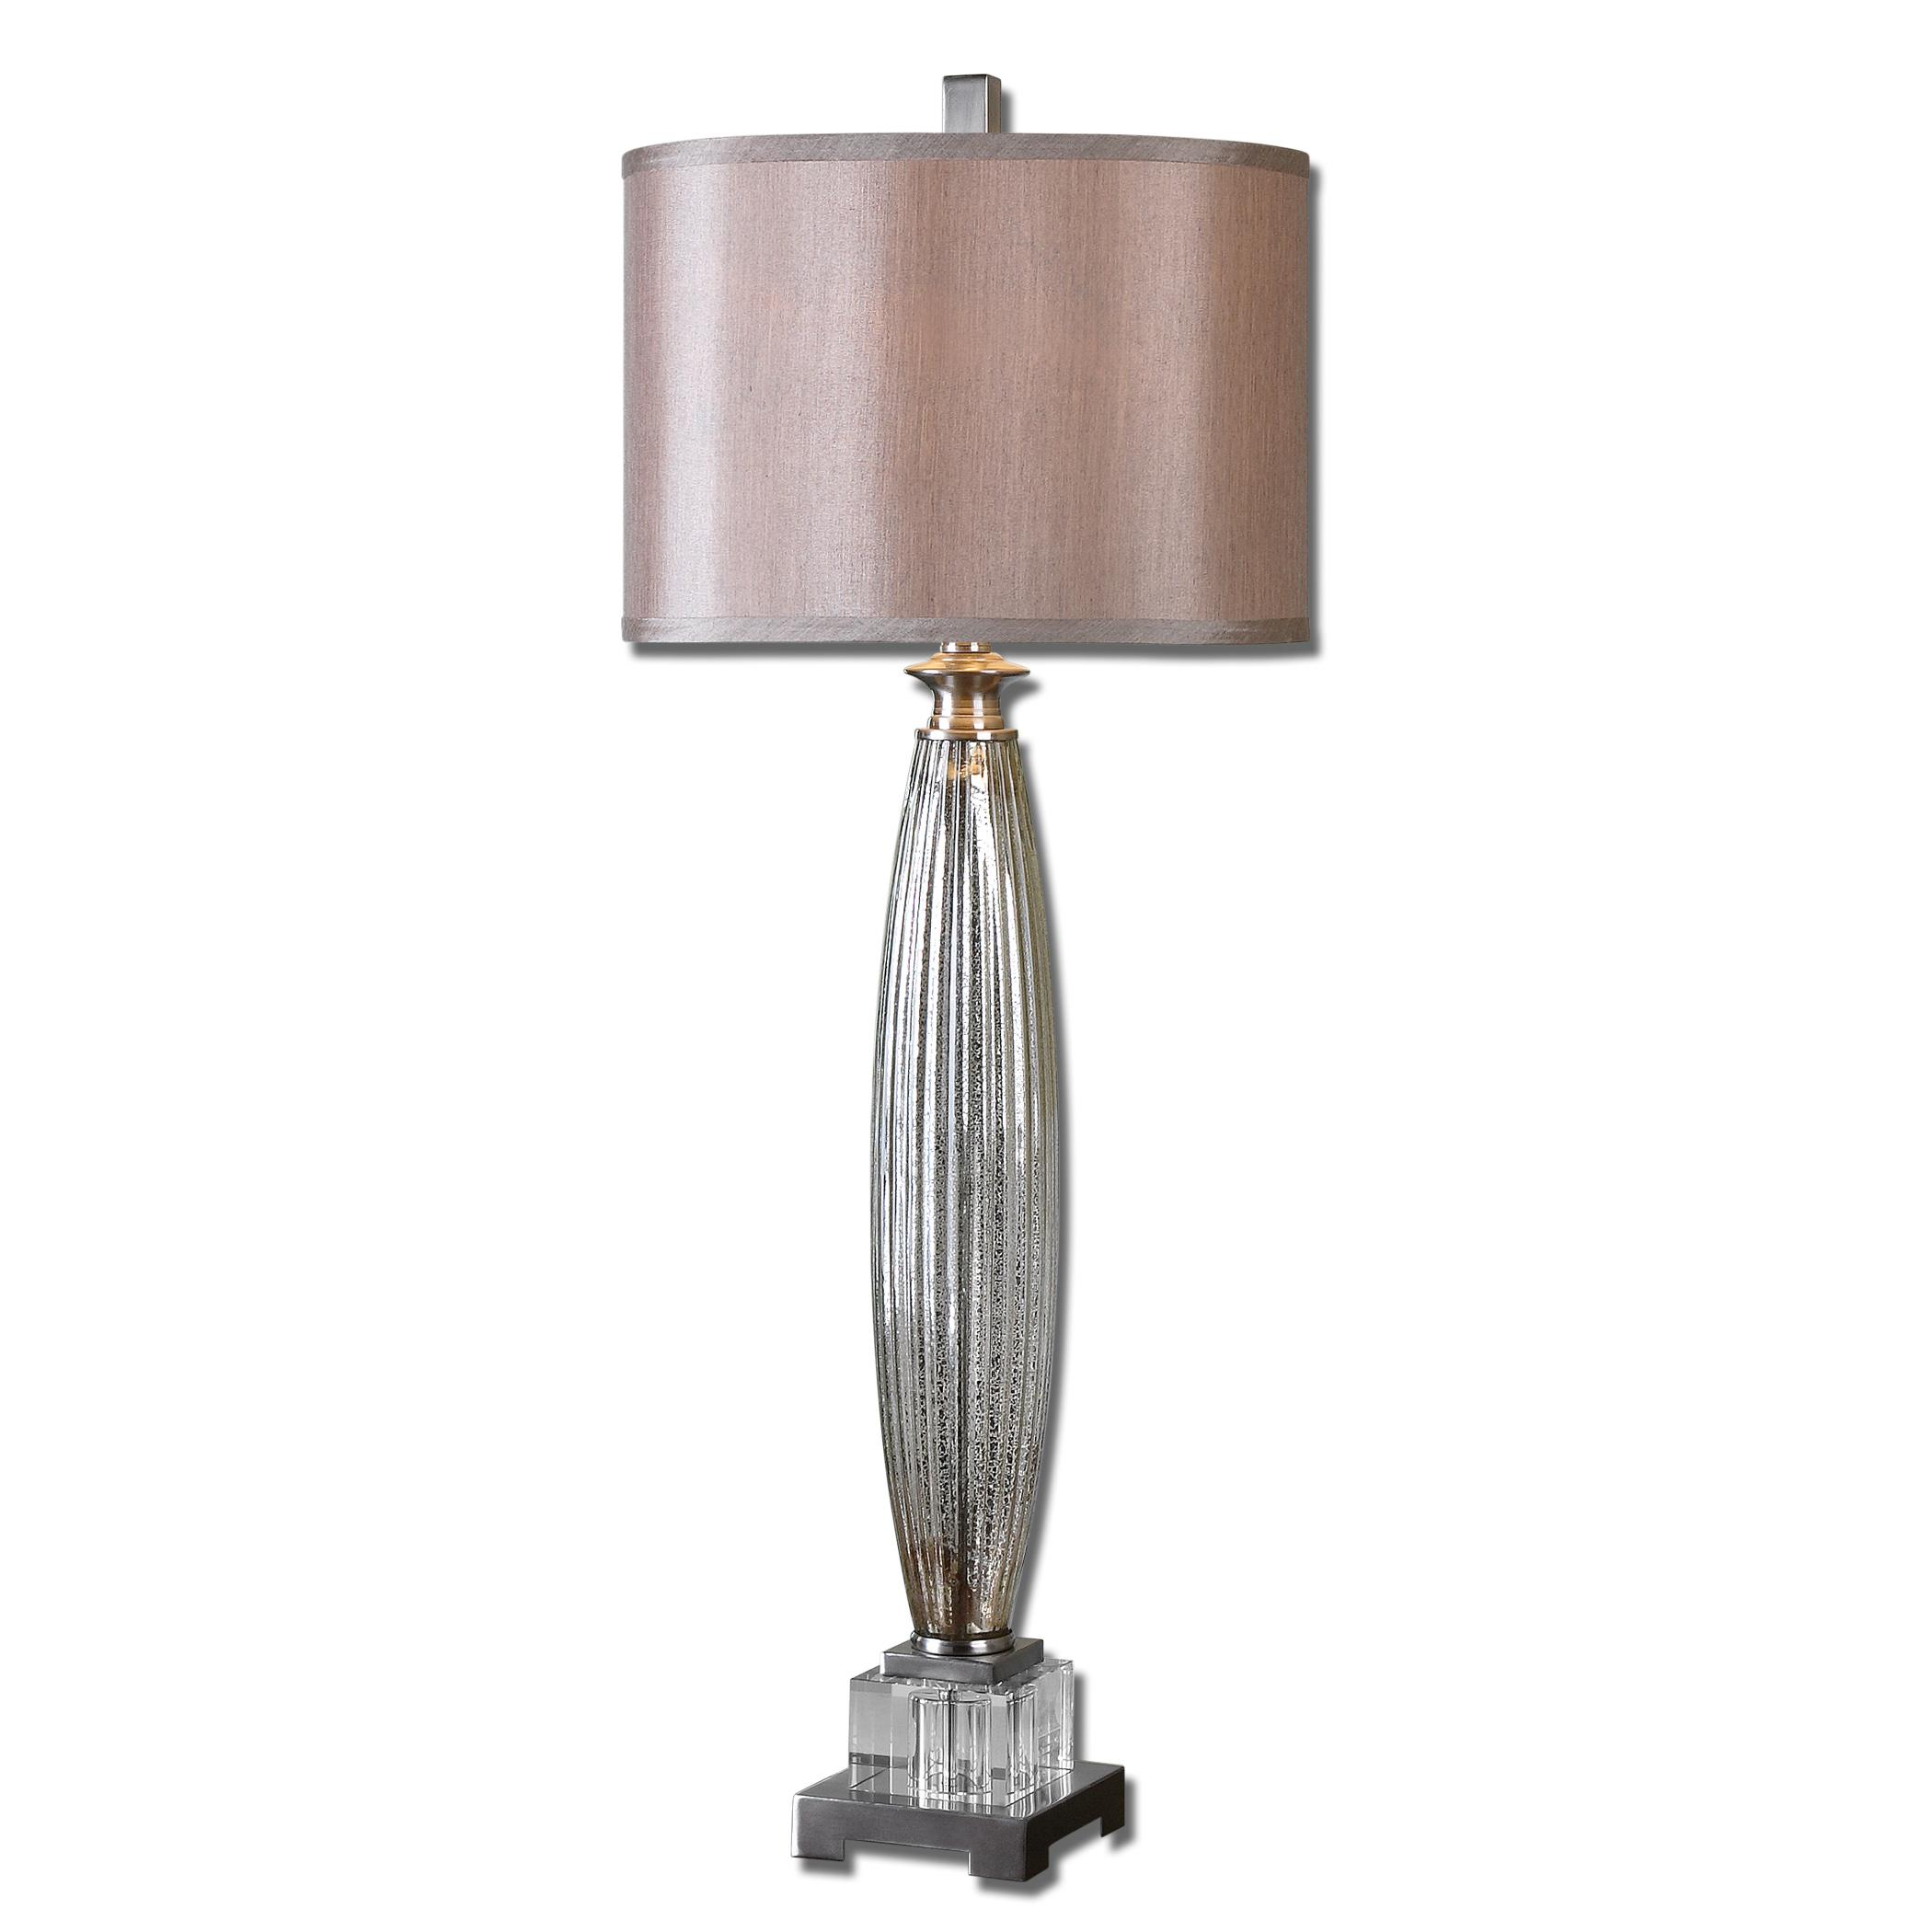 Buffet Lamps Loredo Mercury Glass Table Lamp by Uttermost at Suburban Furniture